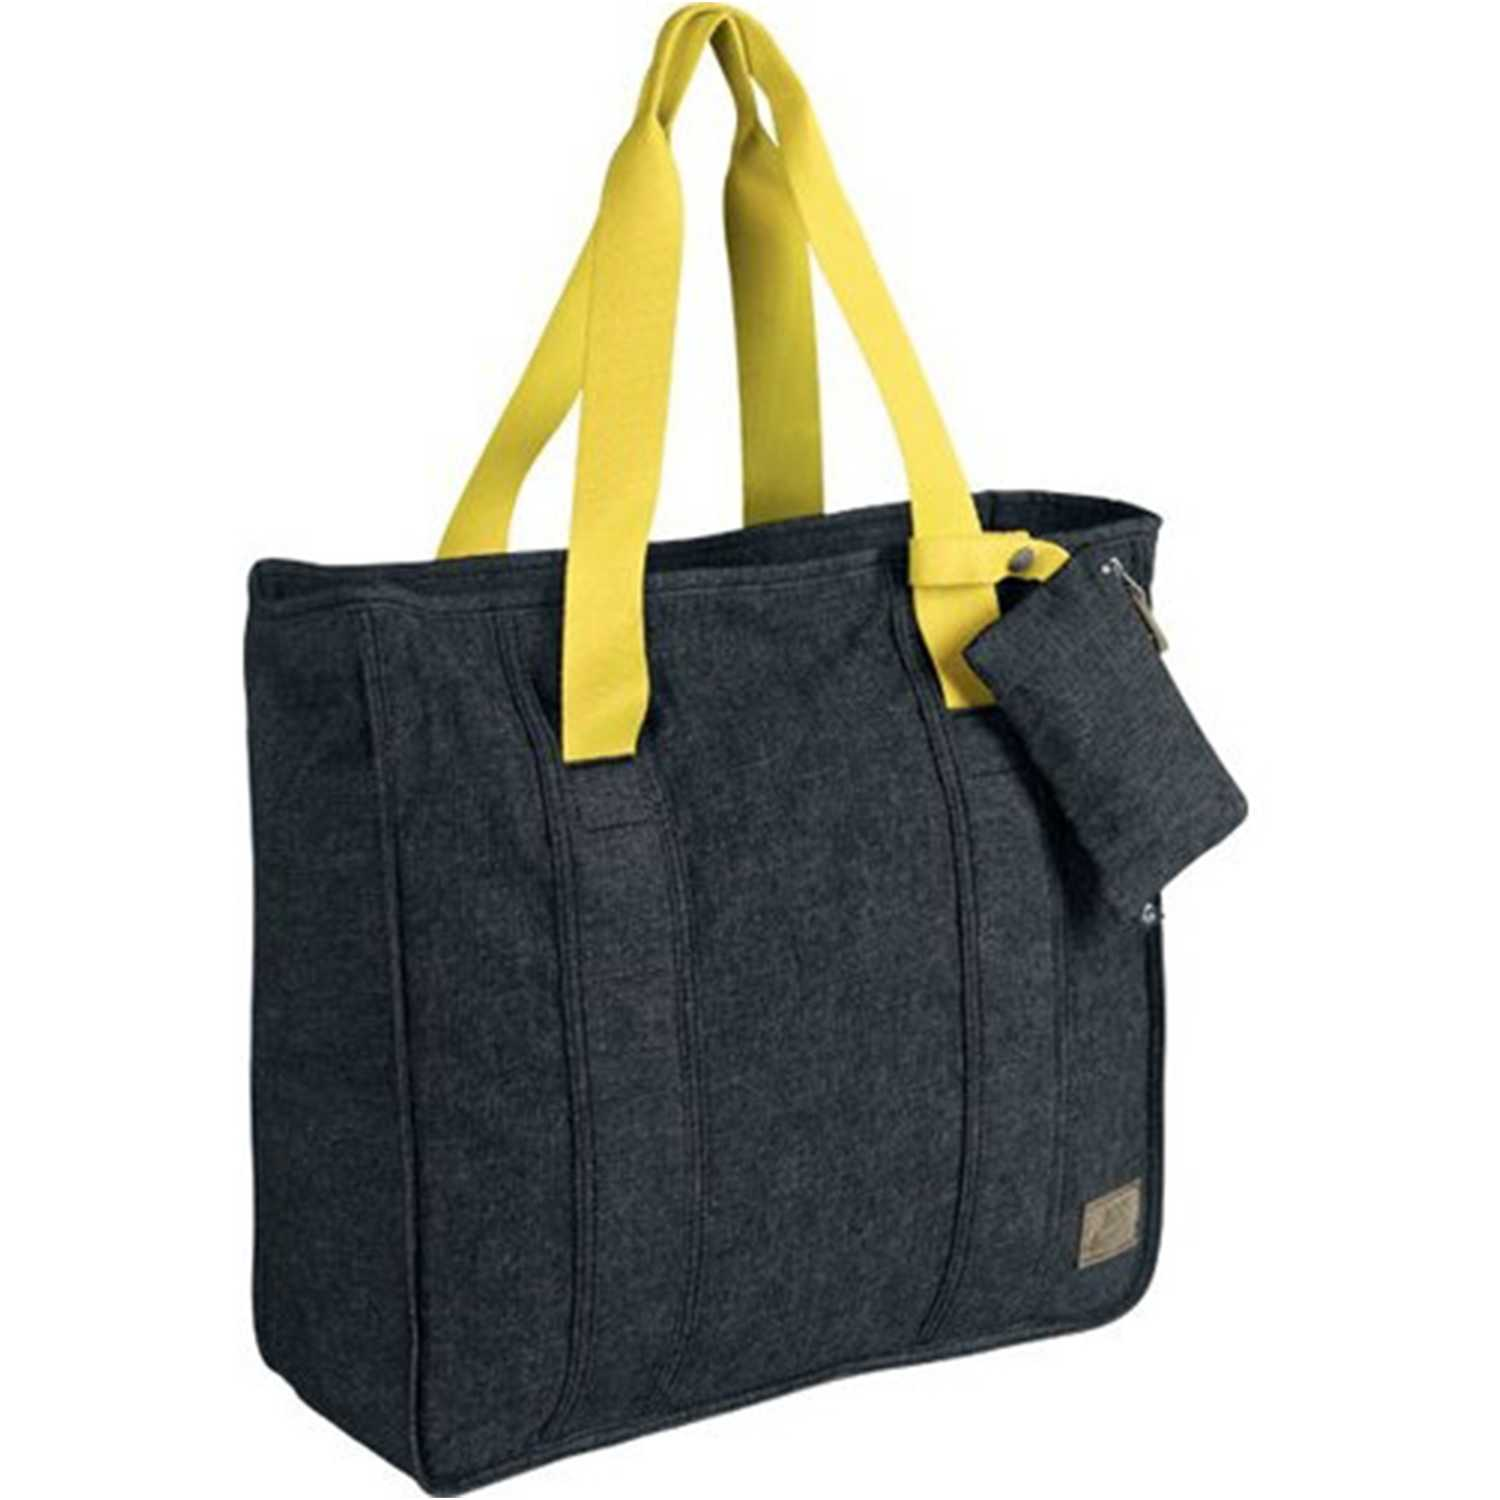 Chambray Mujer Bolso Gris De Nike Tote 5S0wzxn